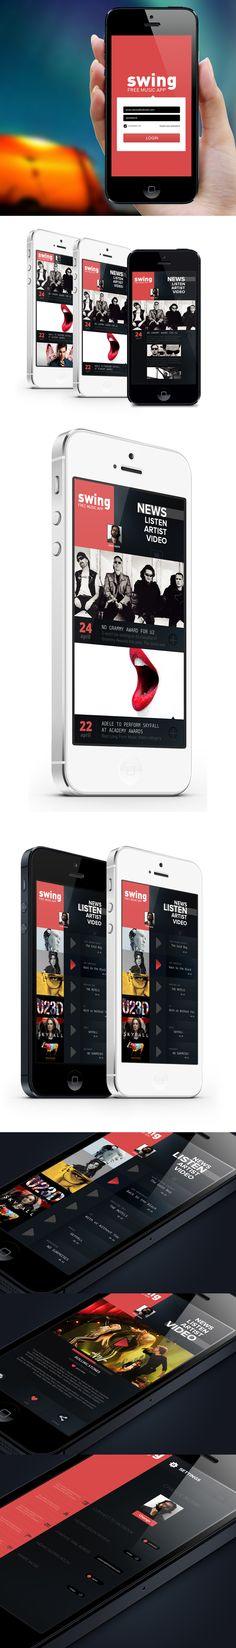 iphone Music App (concept) by Enes Danis, via Behance